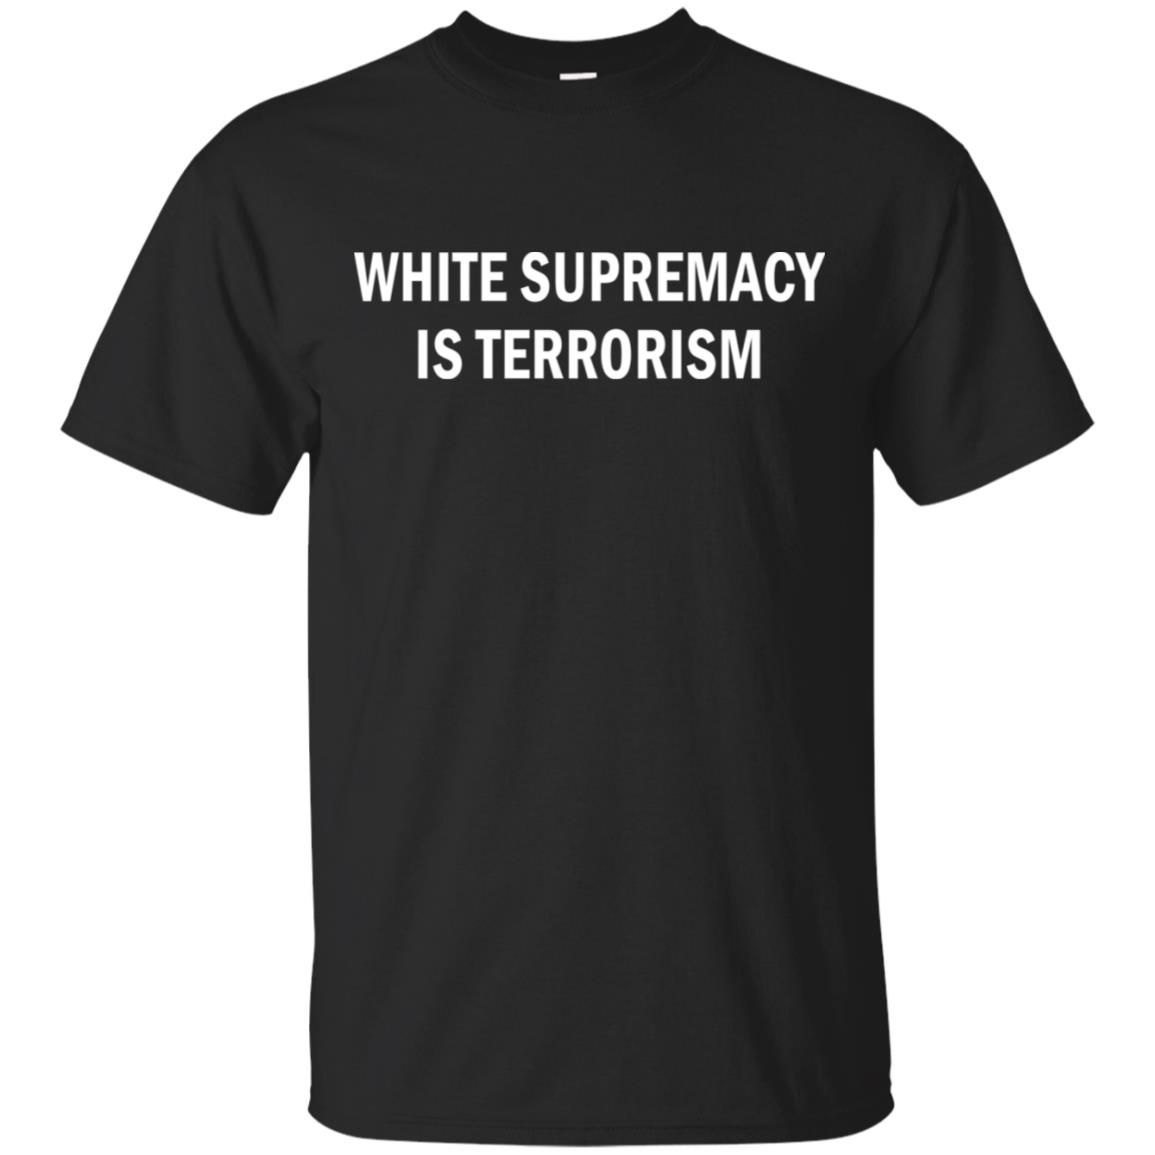 White Supremacy is Terrorism shirt For men women Fathers day v neck tank top 2020 This product printed in US America quickly delivery and easy tracking your shipment With multi styles Unisex T-shirt Premium T-Shirt - Tank Top Hoodie Sweatshirt Womens T-shirt Long Sleeve near me White Supremacy is Terrorism shirt For men women Fathers day v neck tank top 2020 Premium Customize Digital Printing design also available multi colors black white blue orange redgrey silver yellow green forest brown  mul